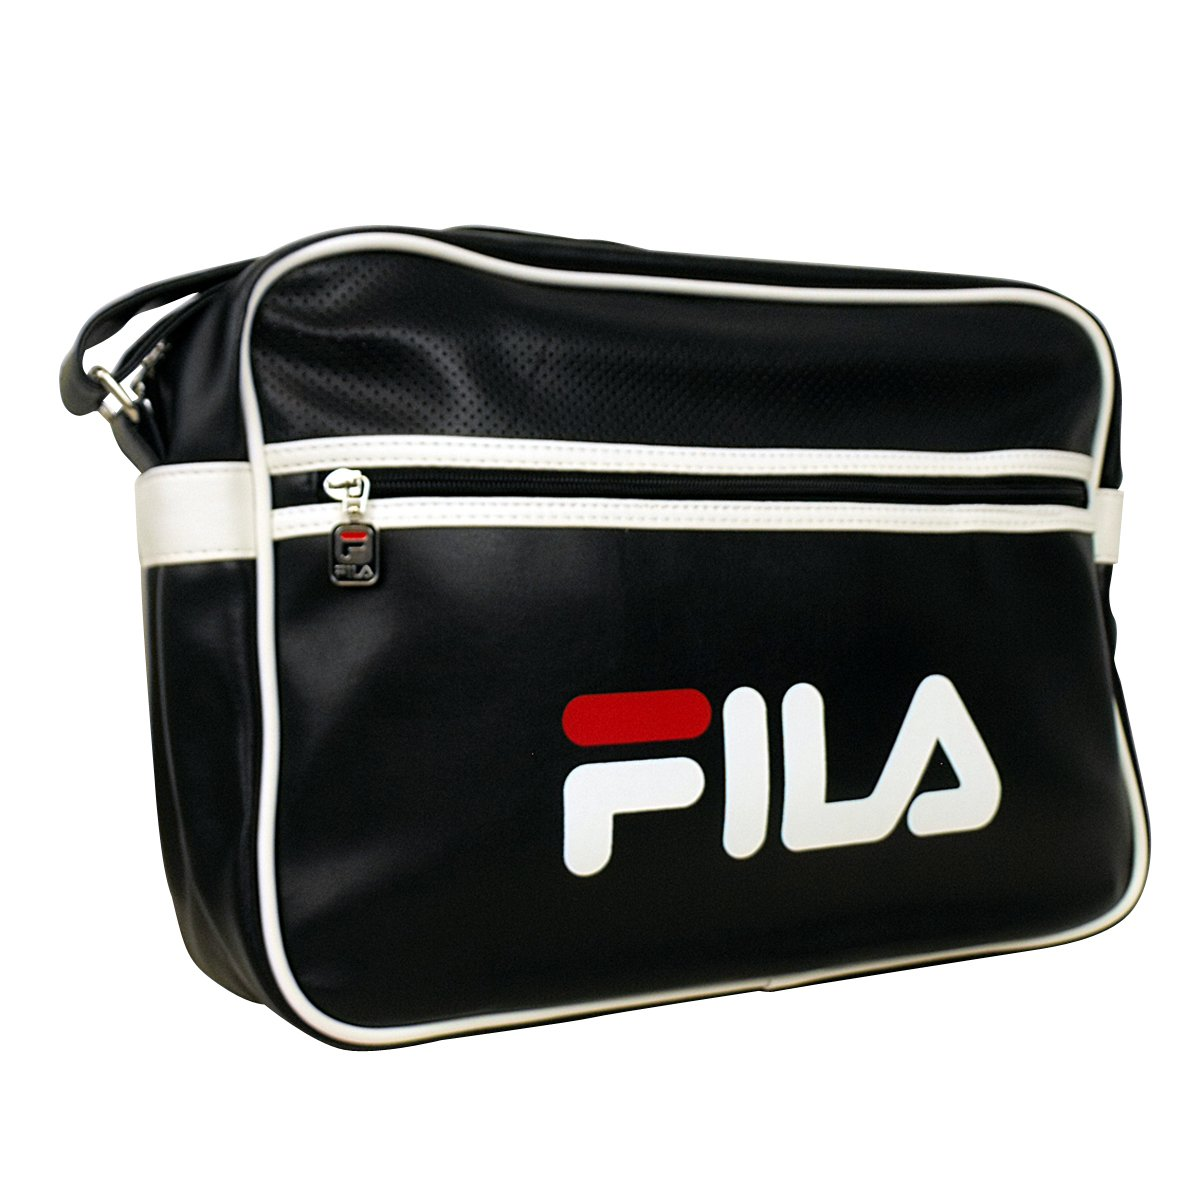 Fila Docena Airline Retro Record Messenger Bag Vintage Laptop School Style   Amazon.co.uk  Clothing d6b2f63e97